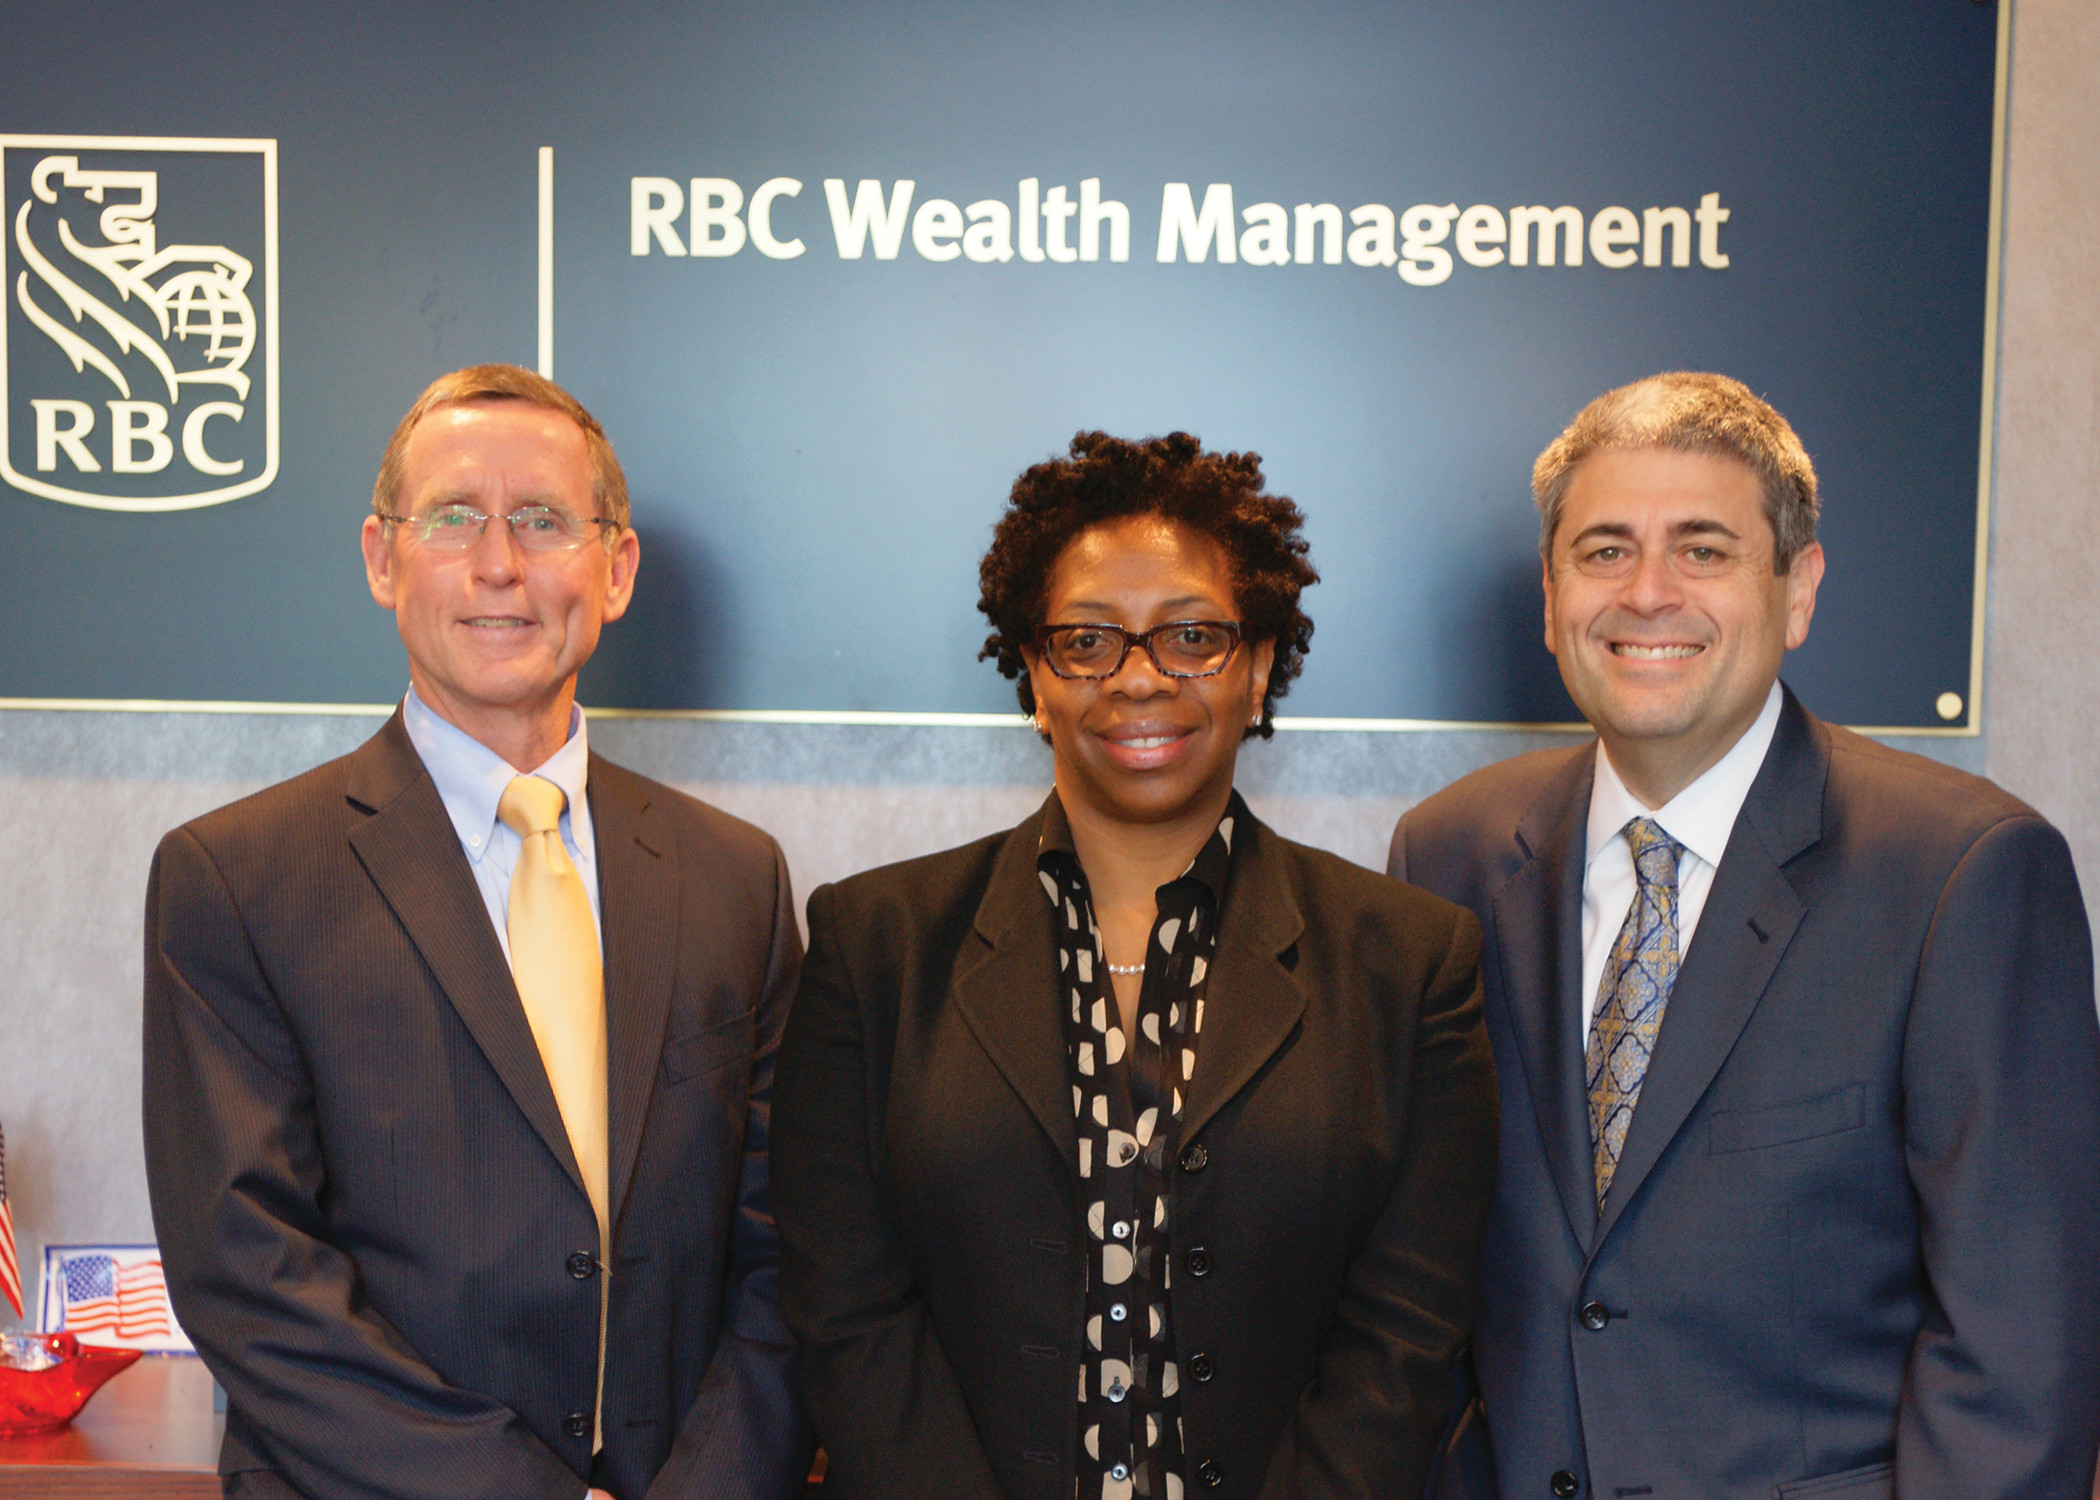 the woo group rbc wealth management The ford group at rbc wealth management 50 likes 4 talking about this the ford group is committed to providing trusted financial advice and.